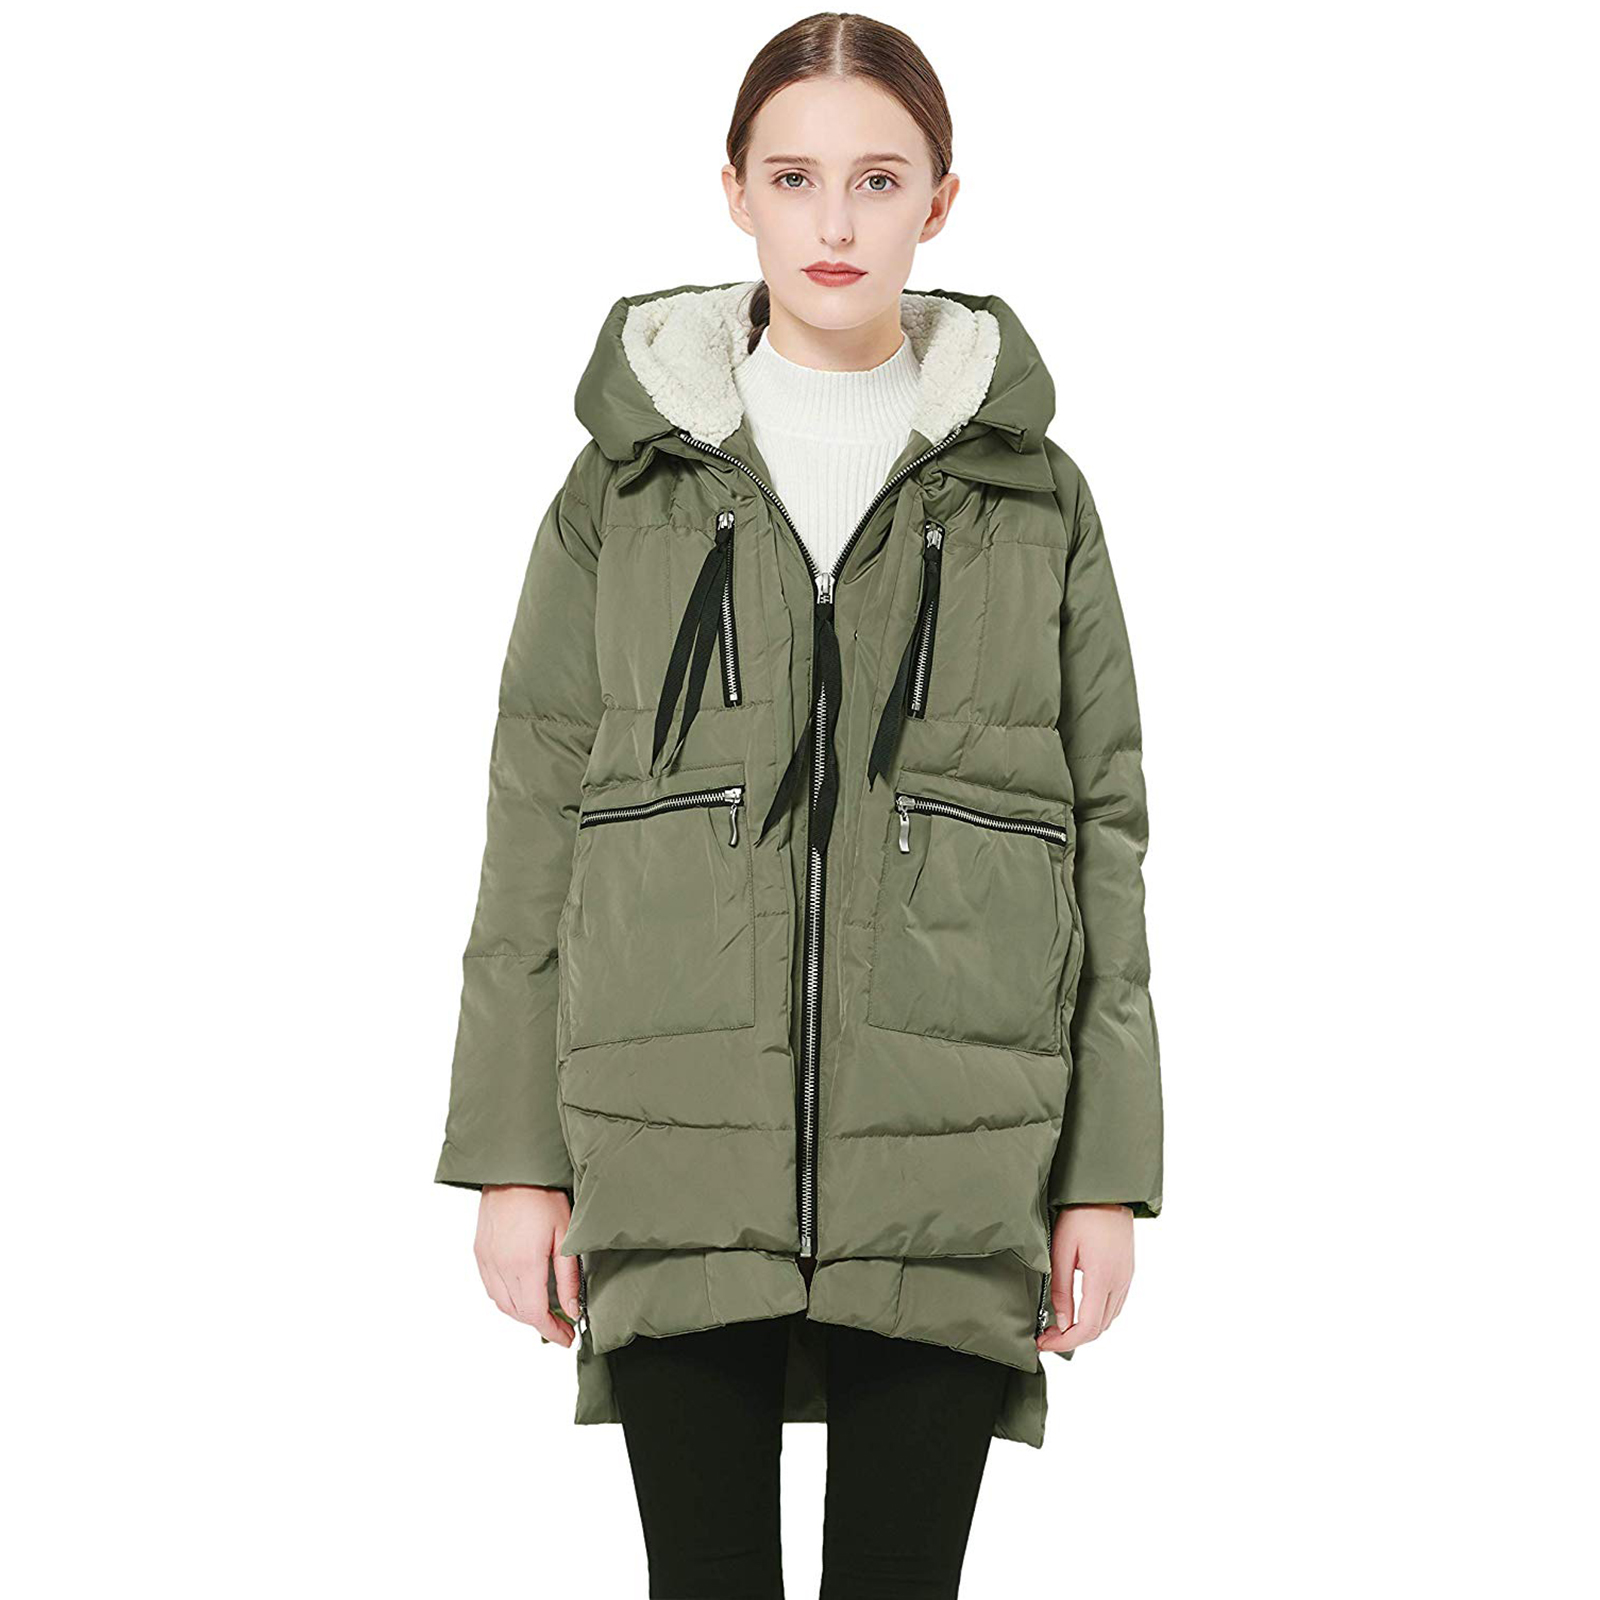 Orolay Women's Thickened Down Jacket Green 2XL